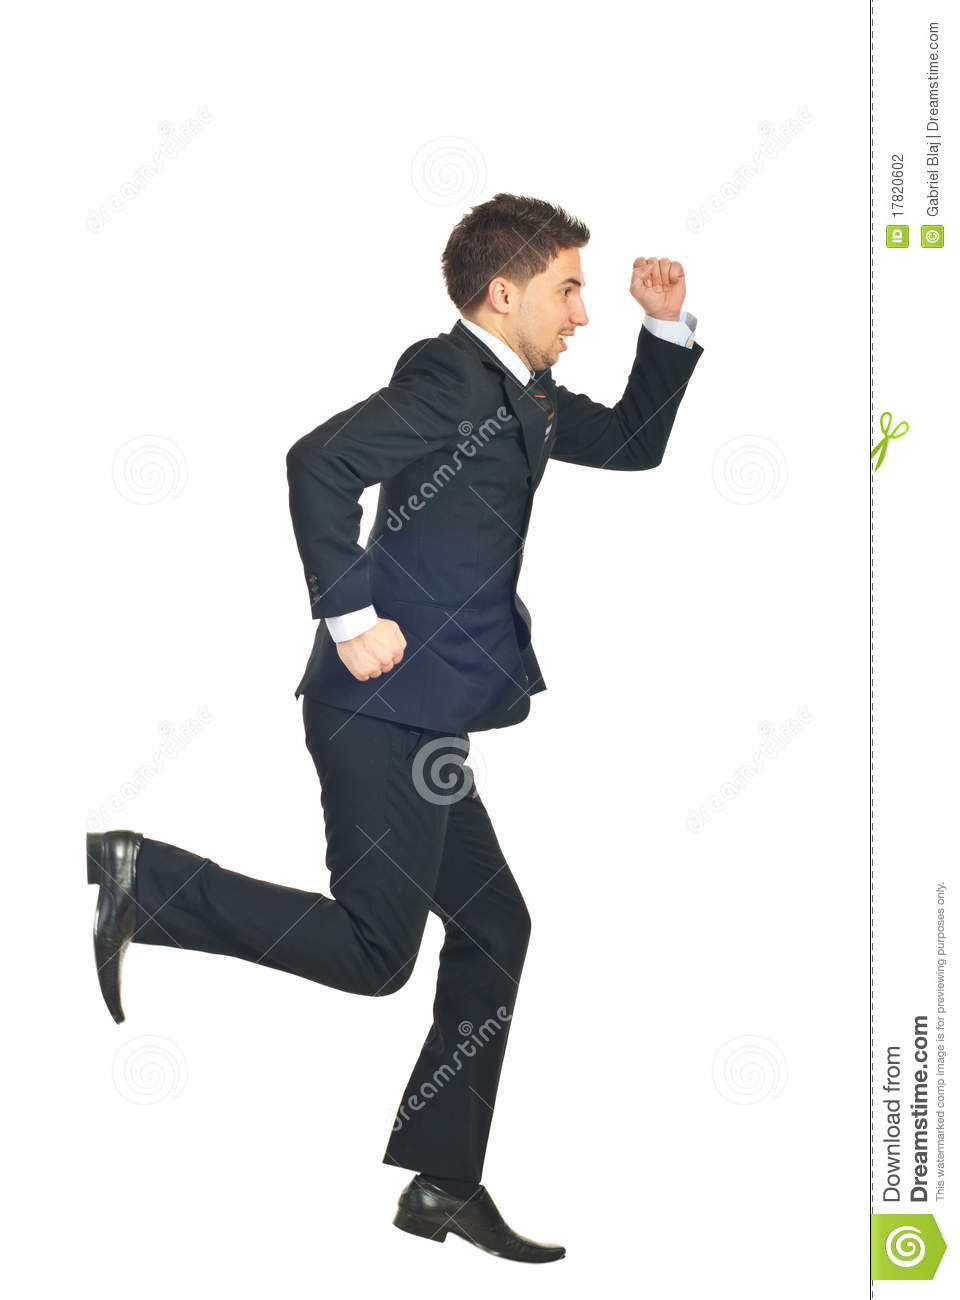 Business Man Running Away Stock Photography - Image: 17820602